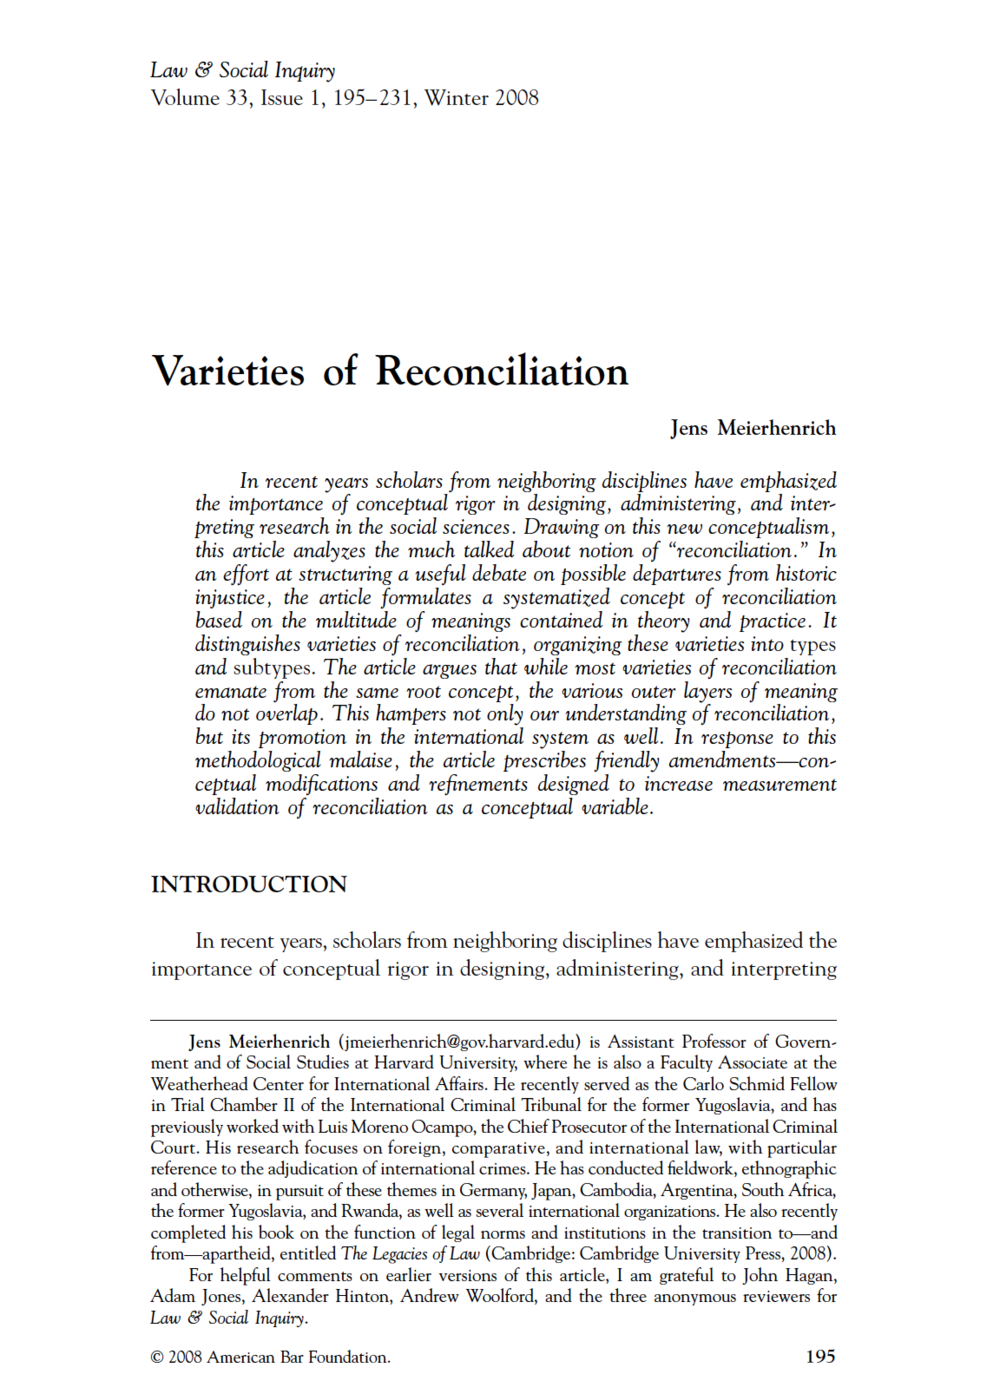 [5] Screen Shot, Varieties of Reconciliation [2008].png